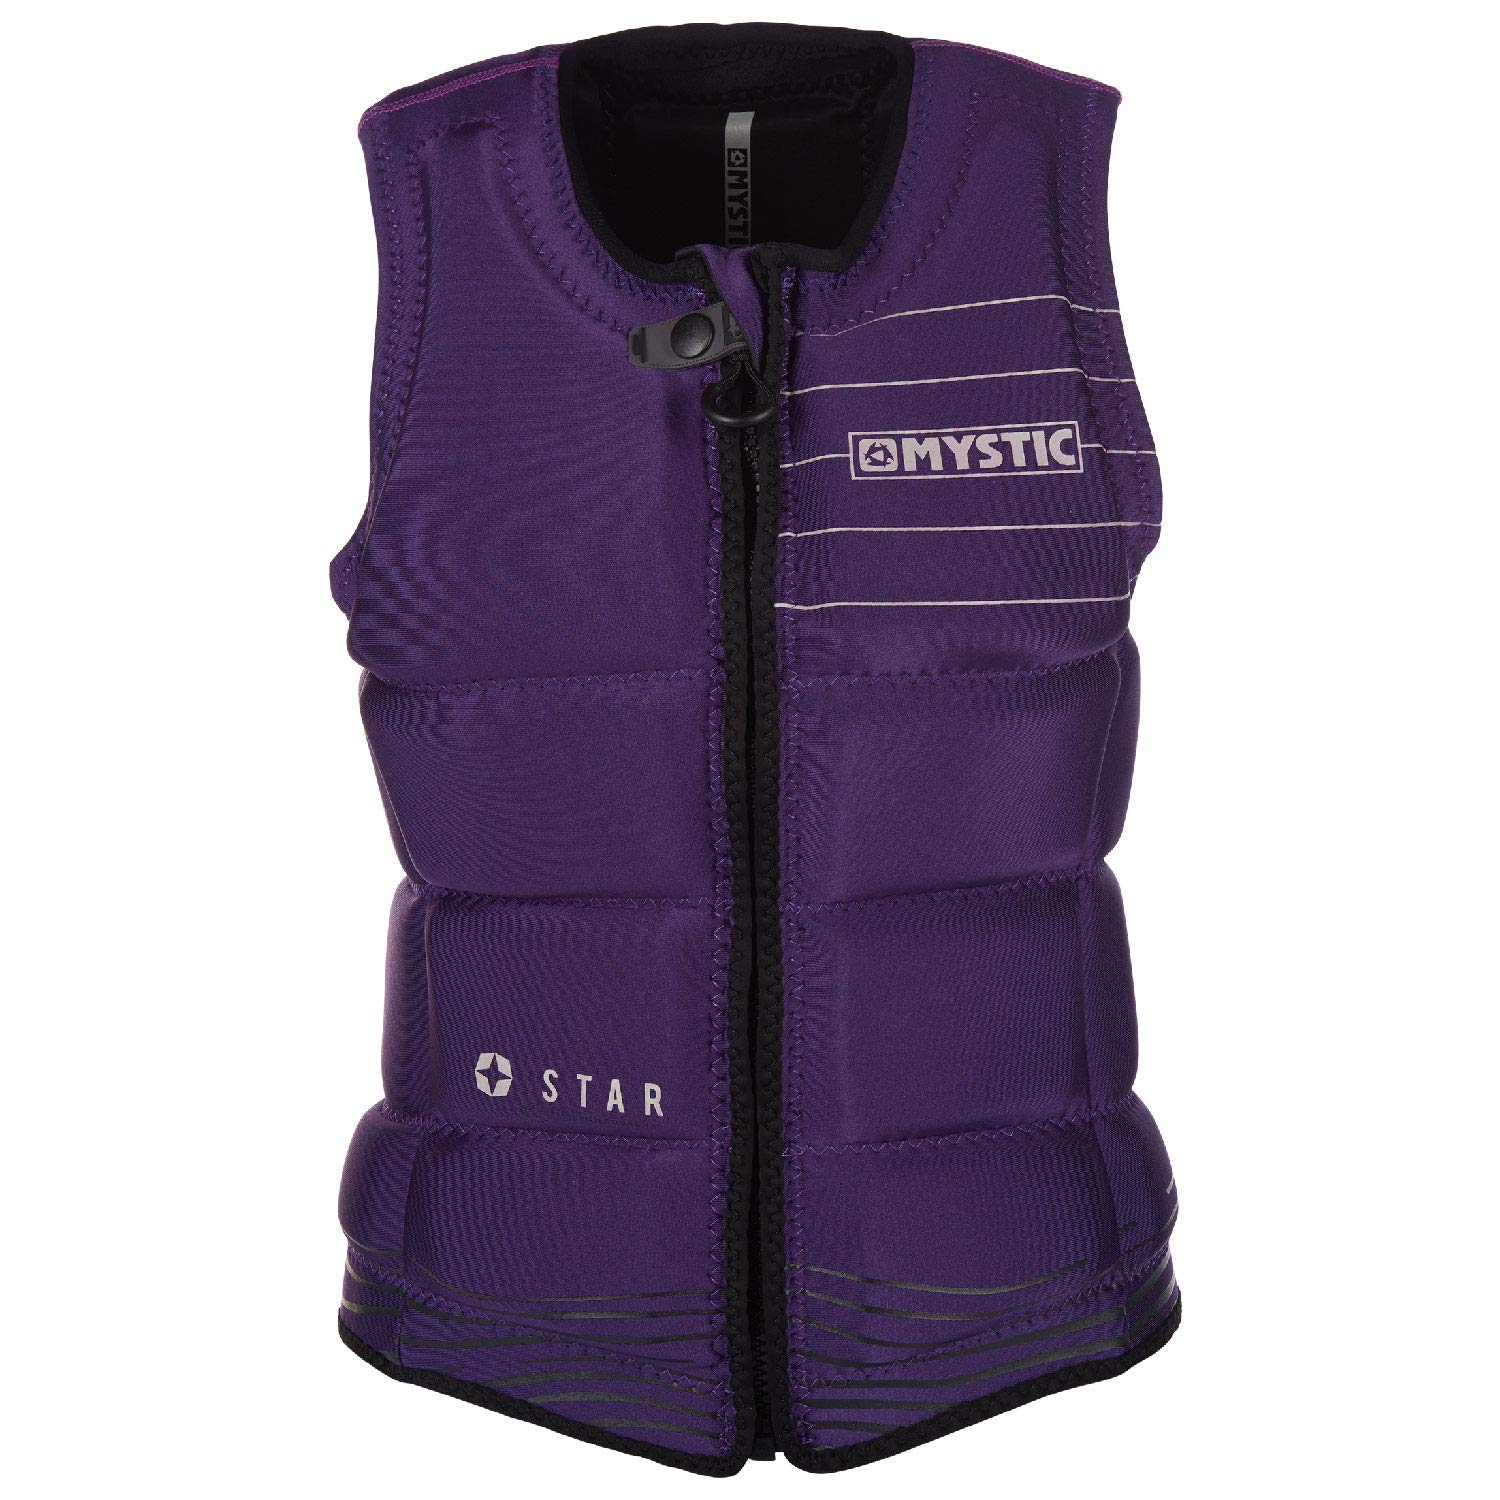 Mystic Womens Star Front-Zip Wake Impact Vest 2019 - Purple M by Mystic